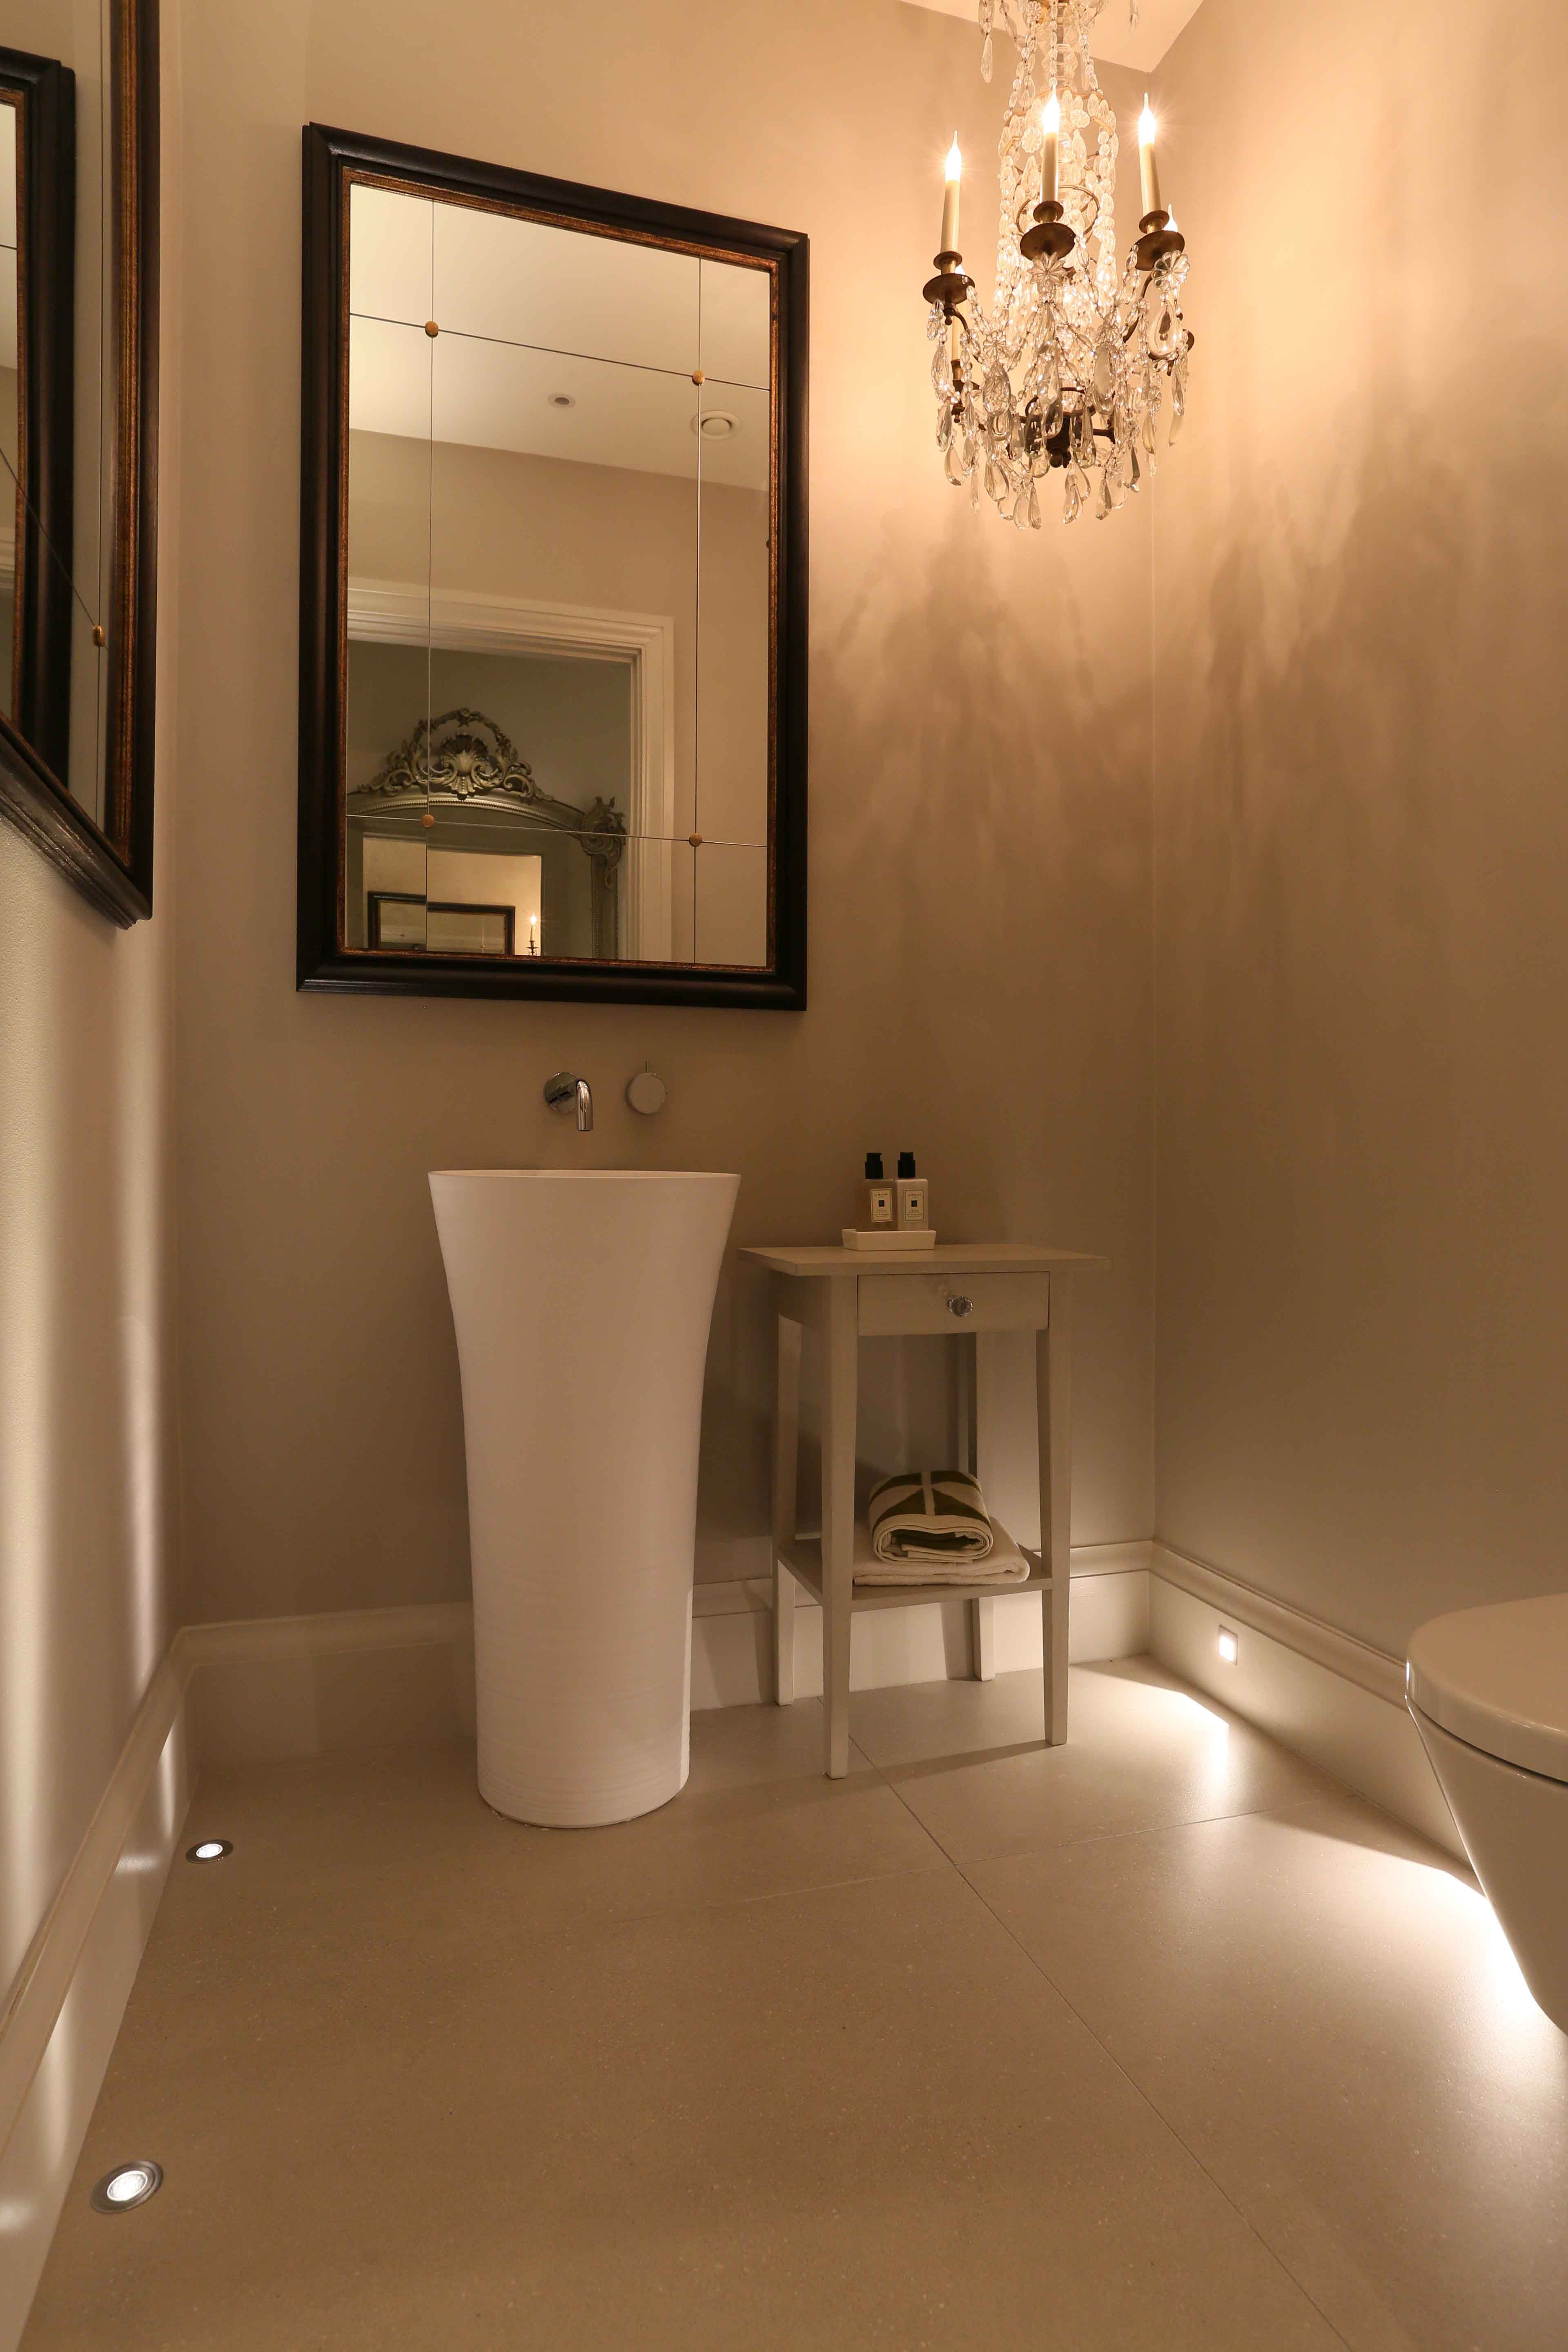 Lighting Design Bathroom Cloakroom Lighting Design John Cullen Lighting  Bathroom Ideas